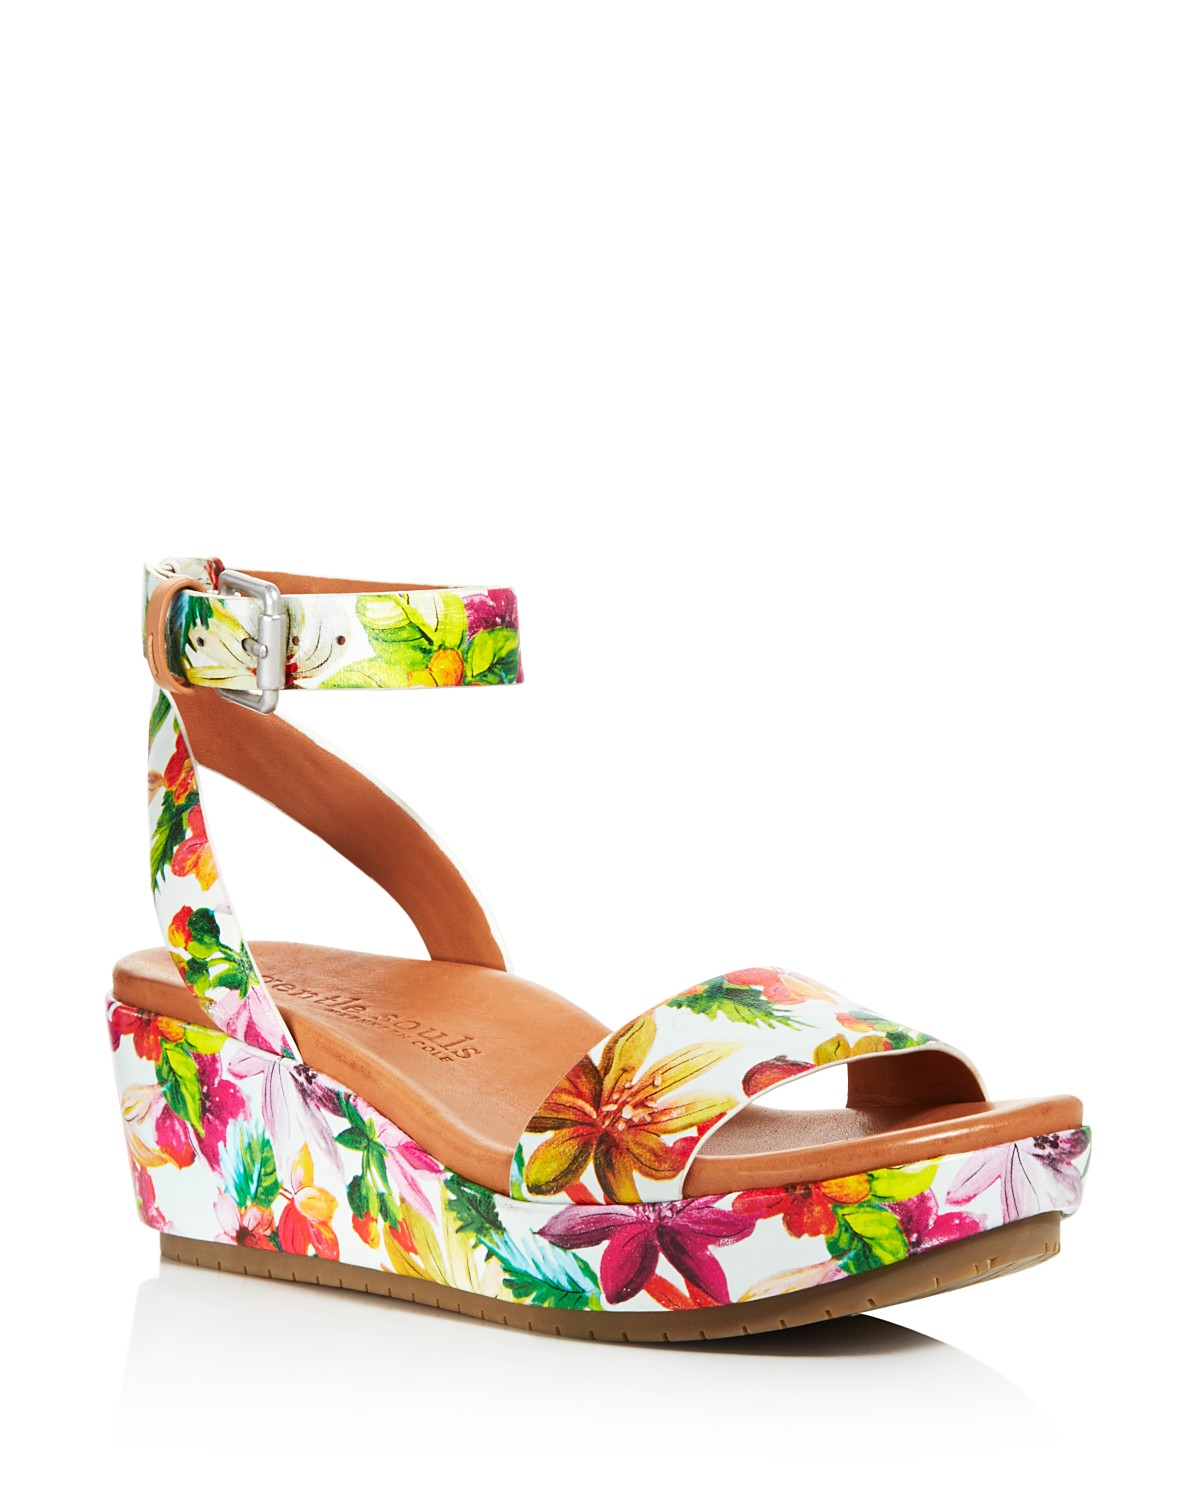 Kenneth Cole Gentle Souls Women's Morrie Printed Leather Platform Wedge Sandals Exclusive Sale Ebay Sale Online Shopping Recommend JUMBuClAY